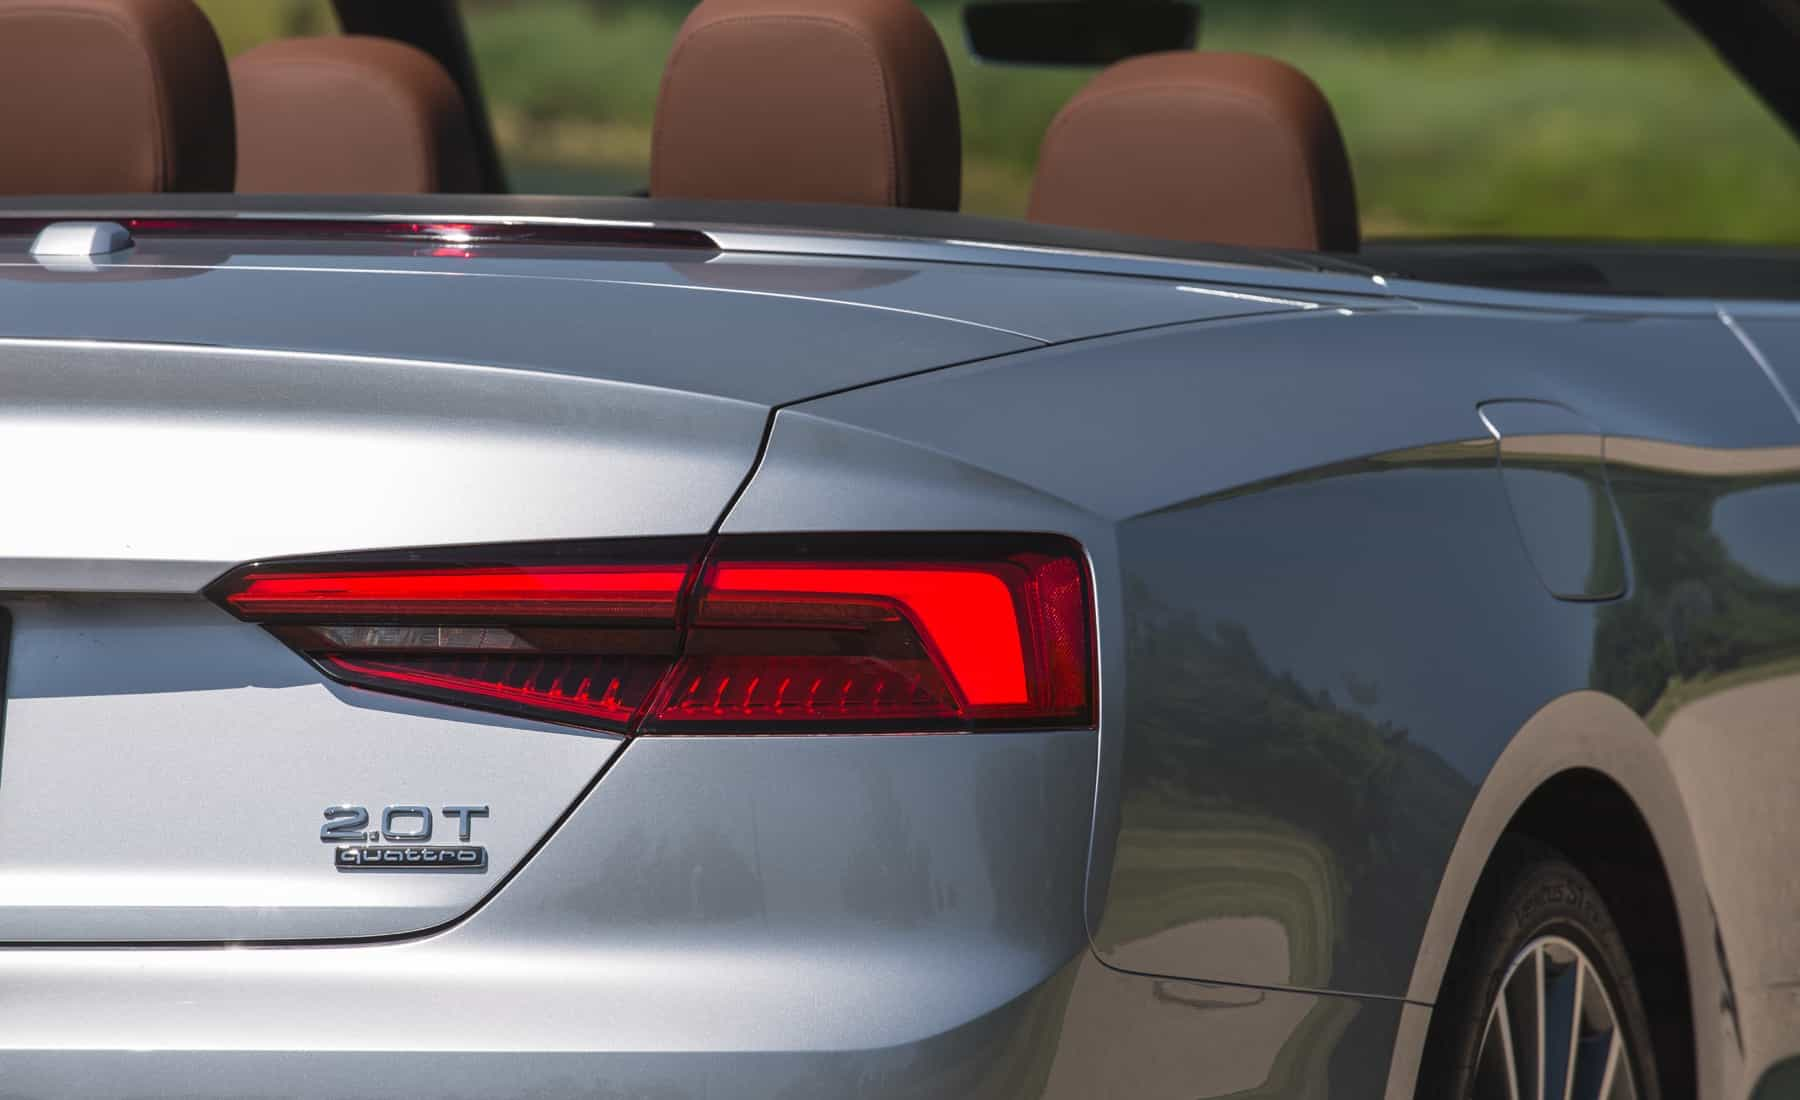 2018 Audi A5 Cabriolet Exterior View Taillight (Photo 30 of 45)